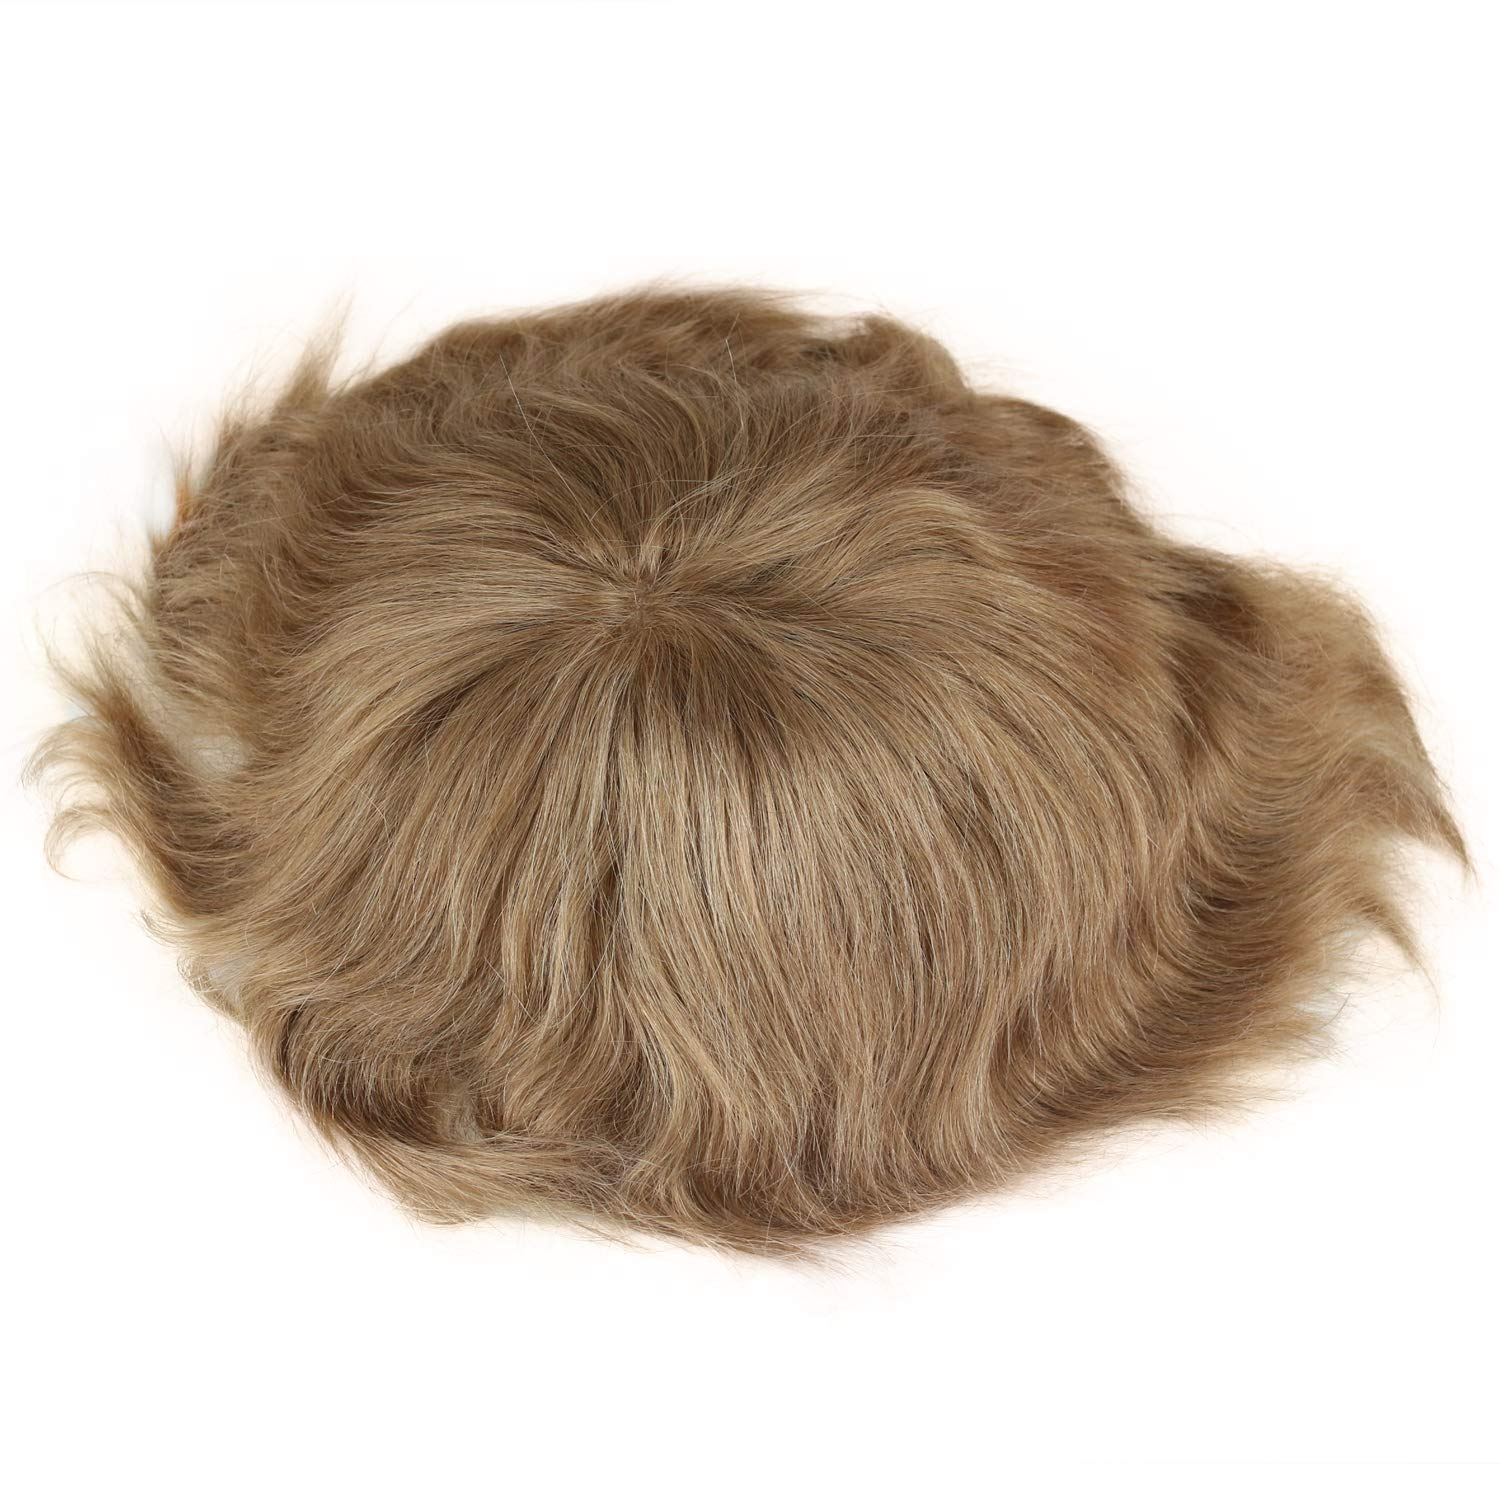 """Men's Toupee Swiss Mono Lace Thin Skin Hairpiece wigs Replacement System for Men #21 Ash Blonde Color European Human Hair 10x8"""""""